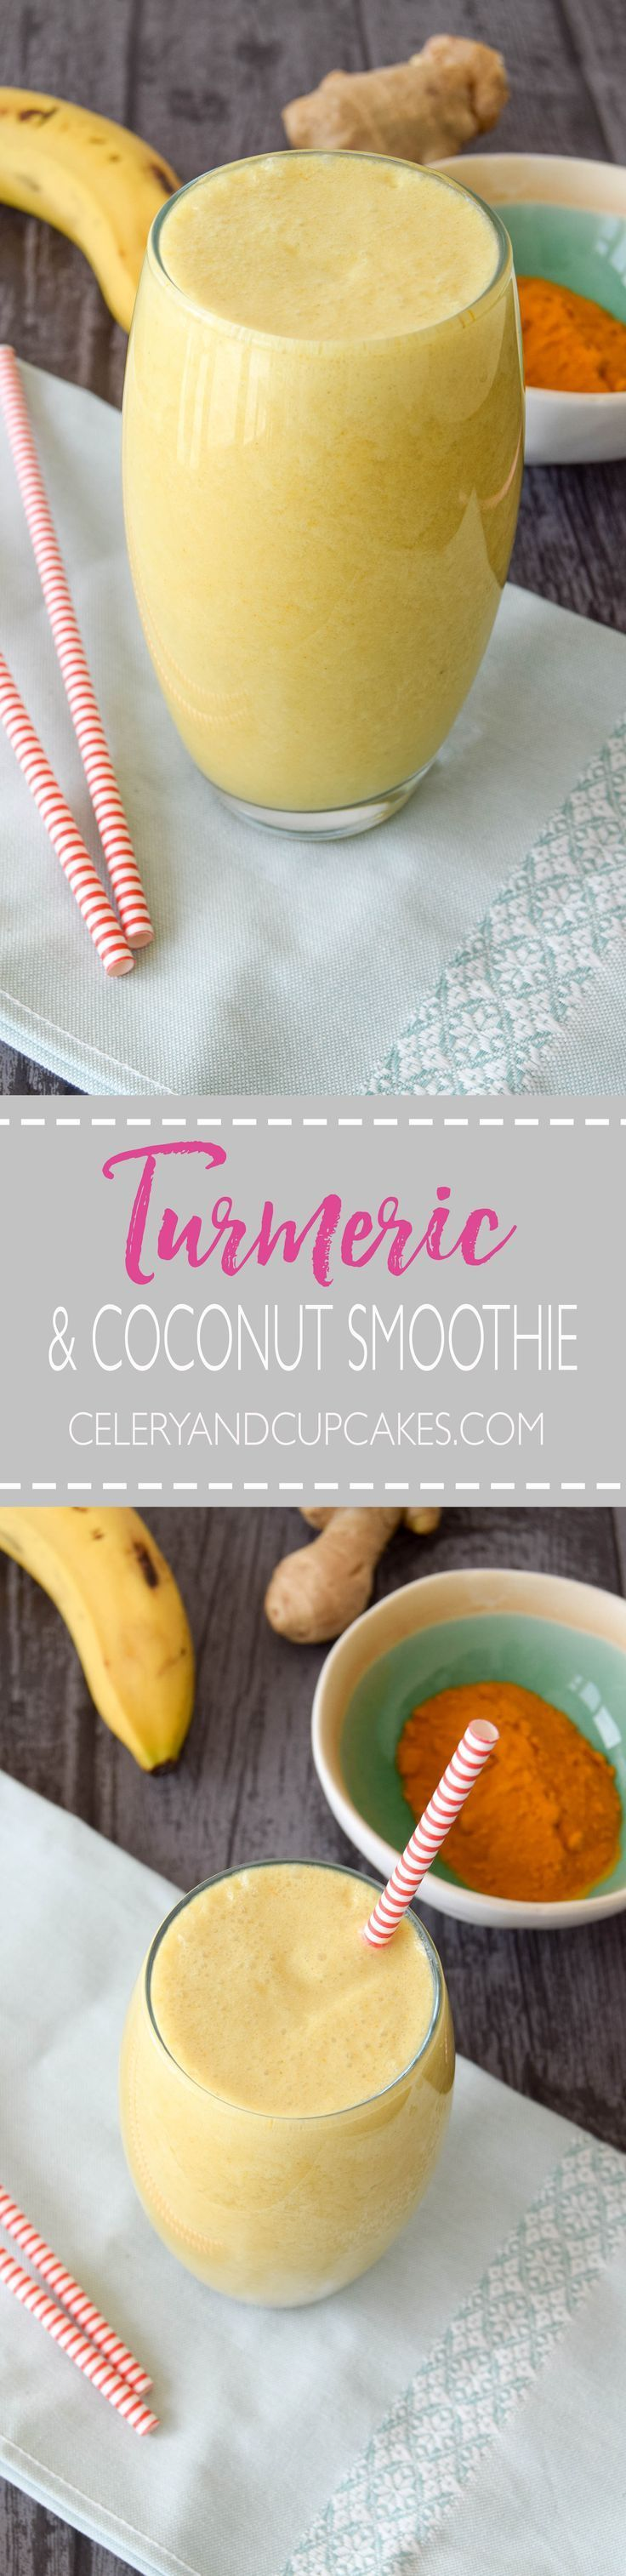 A golden anti-inflammatory smoothie made with turmeric, delicious coconut milk and hydrating coconut water.